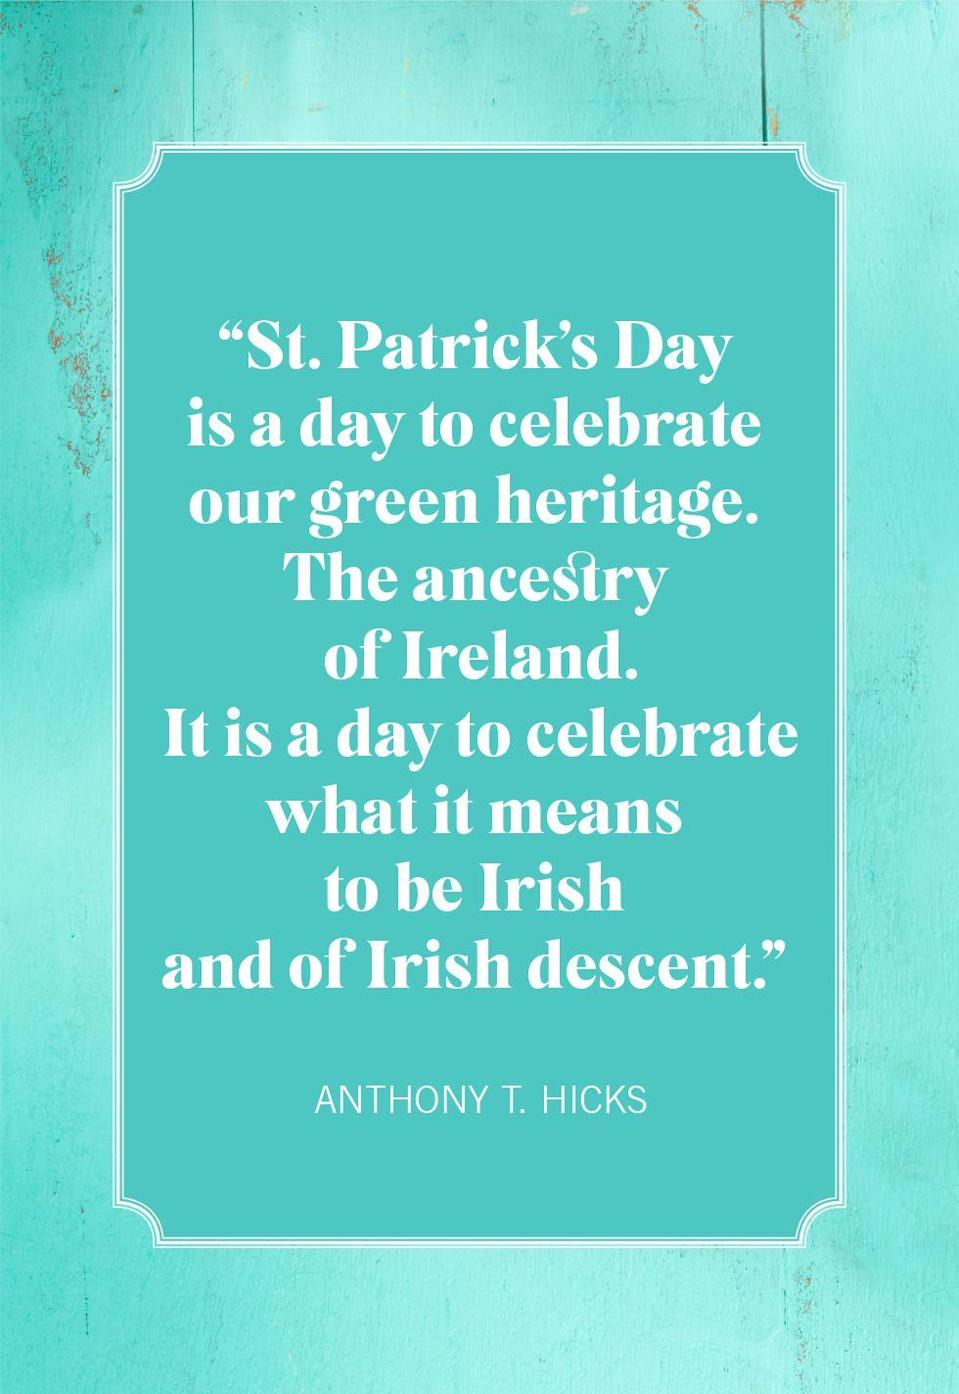 "<p>""St. Patrick's Day is a day to celebrate our green heritage. The ancestry of Ireland. It is a day to celebrate what it means to be Irish and of Irish descent.""</p>"